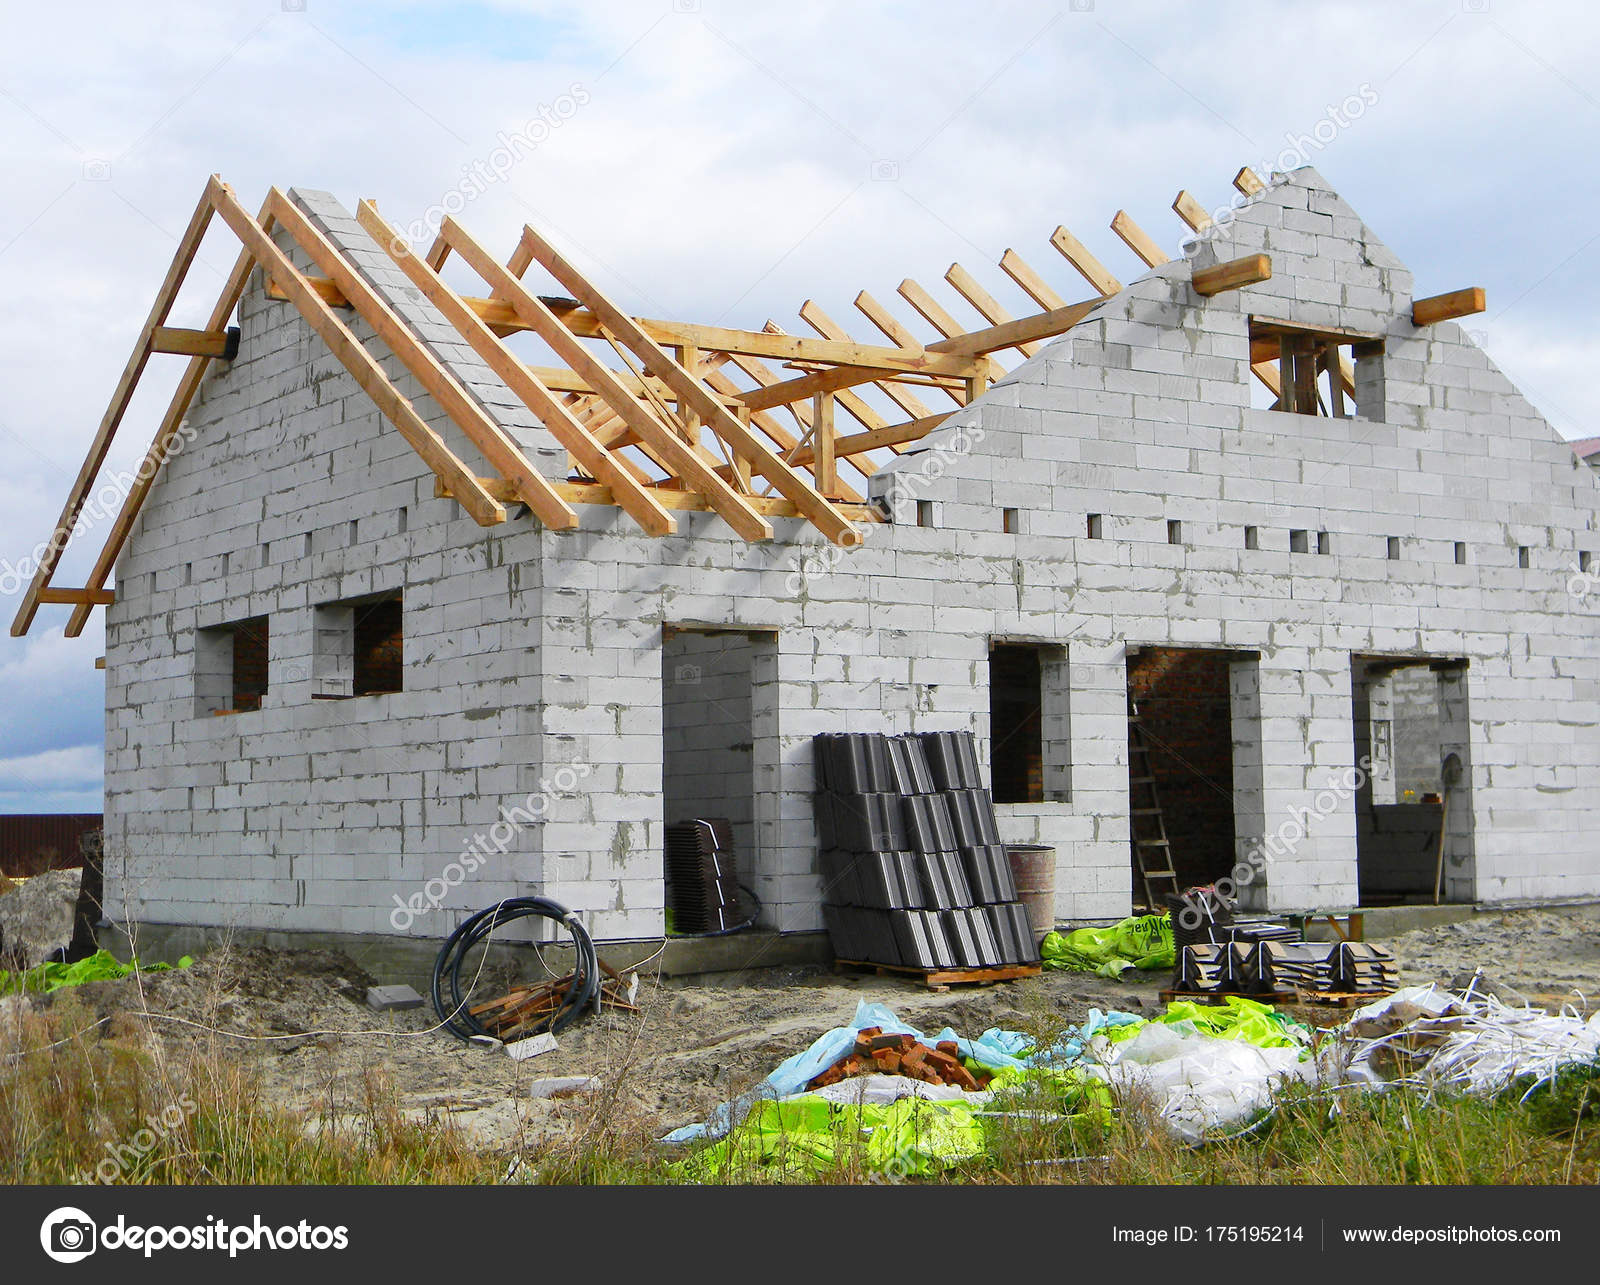 House Roofing Construction With Wooden Trusses. Timber Roof Trusses Building.  Wooden Roof Frame House Construction. Construction Site.